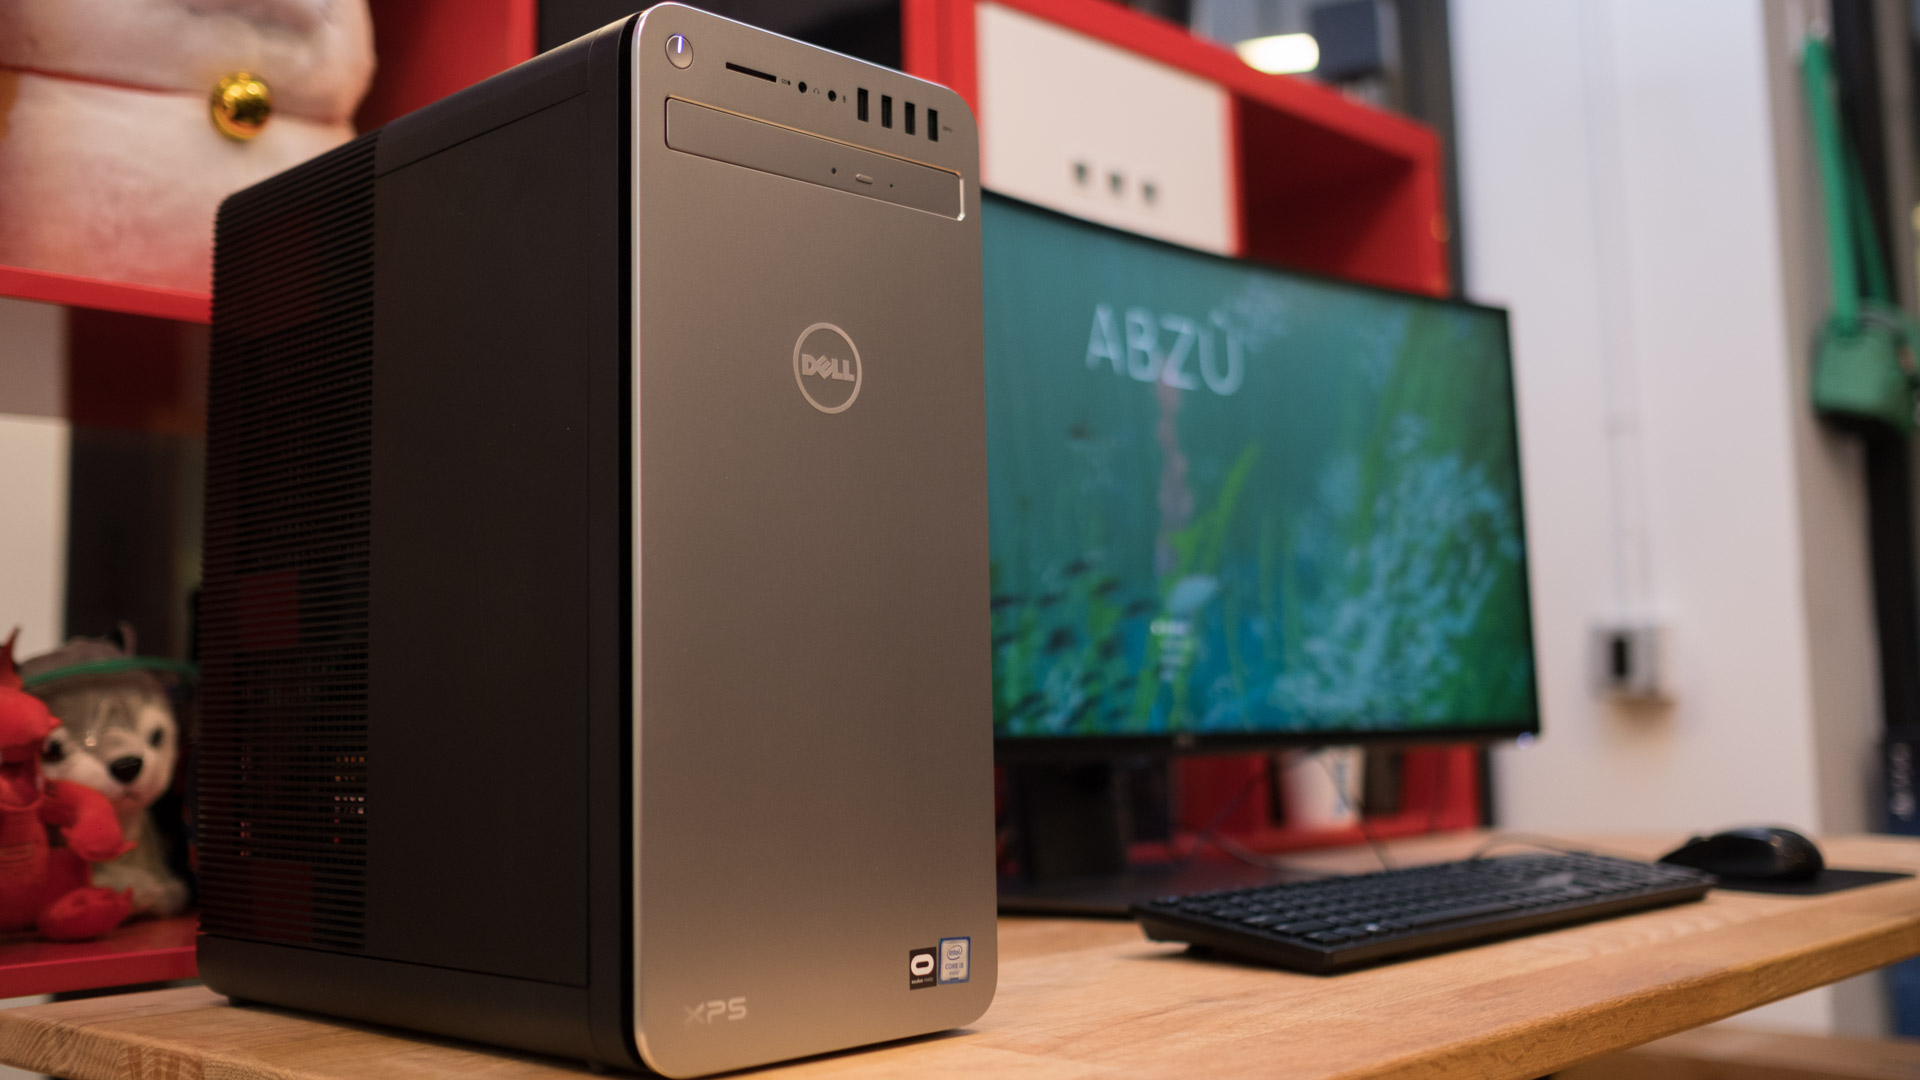 Peachy Dell Xps Tower Special Edition Review Techradar Download Free Architecture Designs Terchretrmadebymaigaardcom